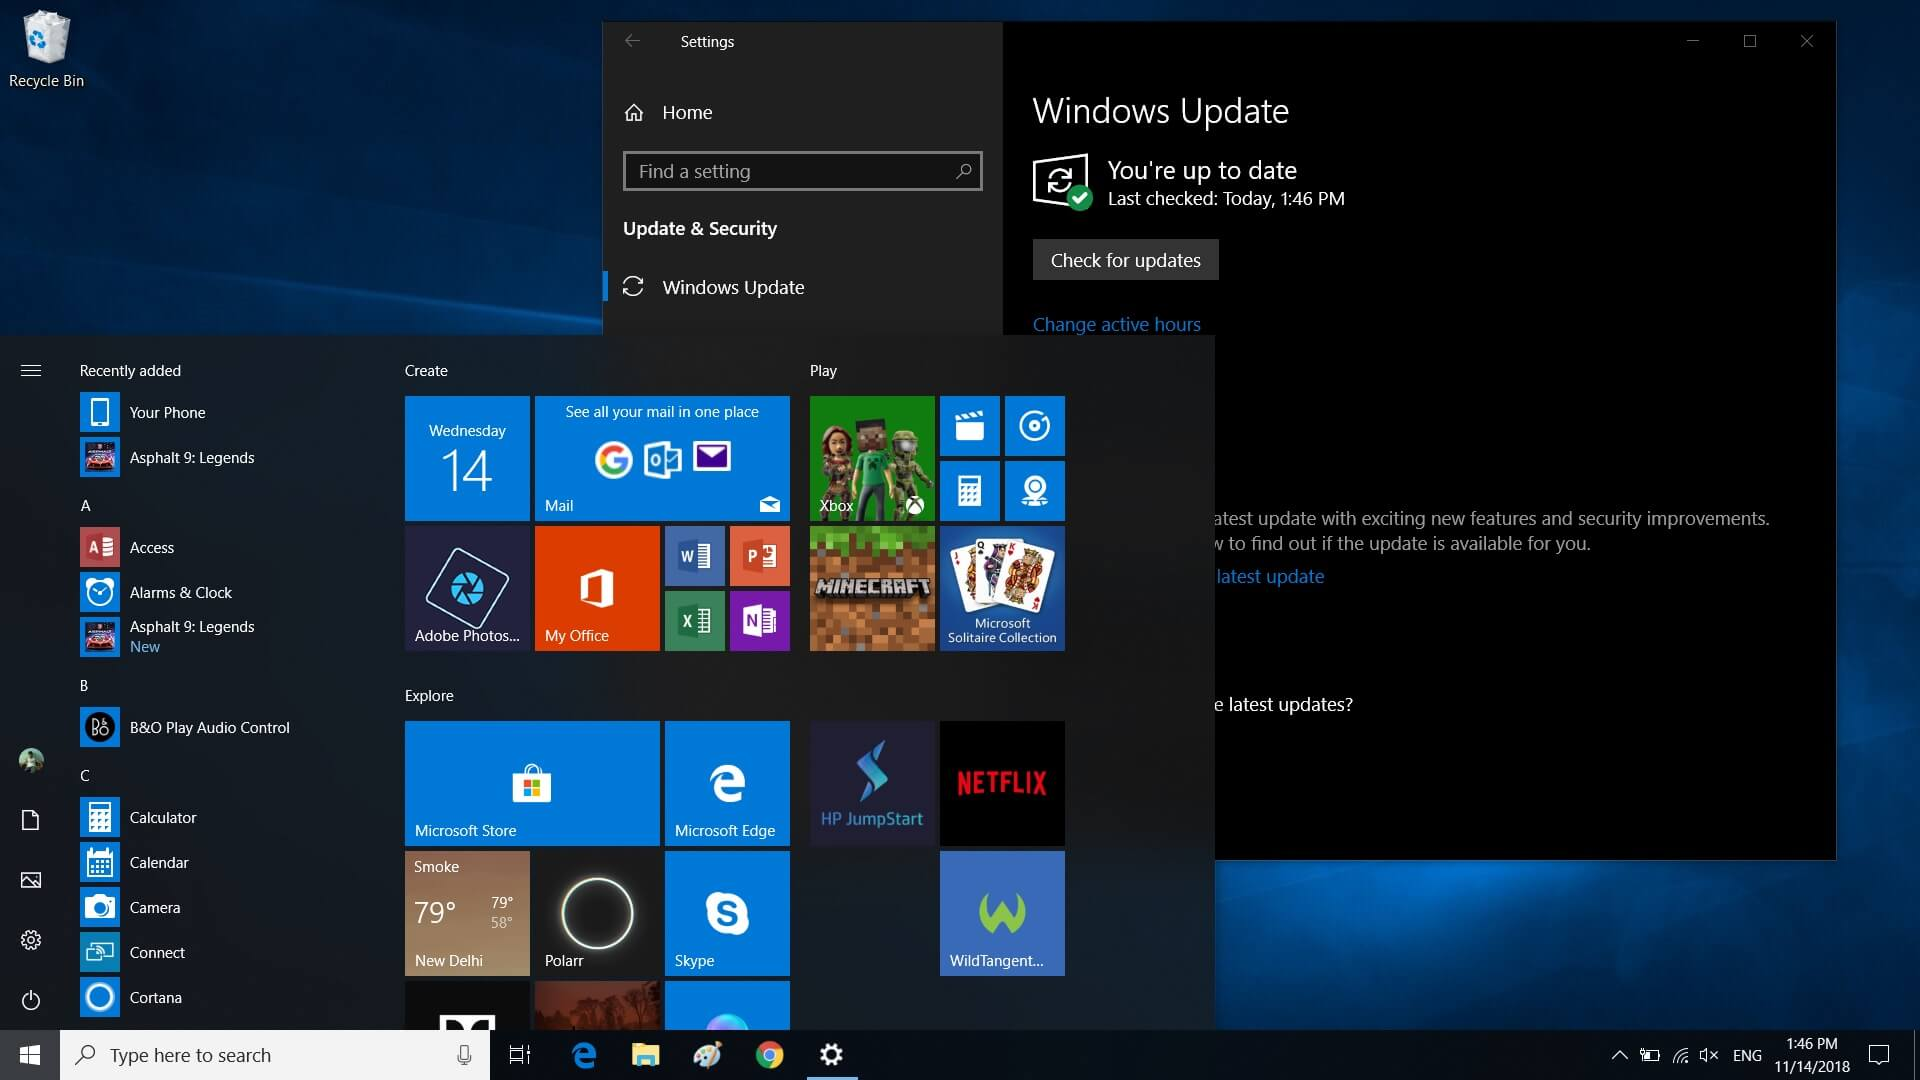 Microsoft is aware of the issues with Windows Update